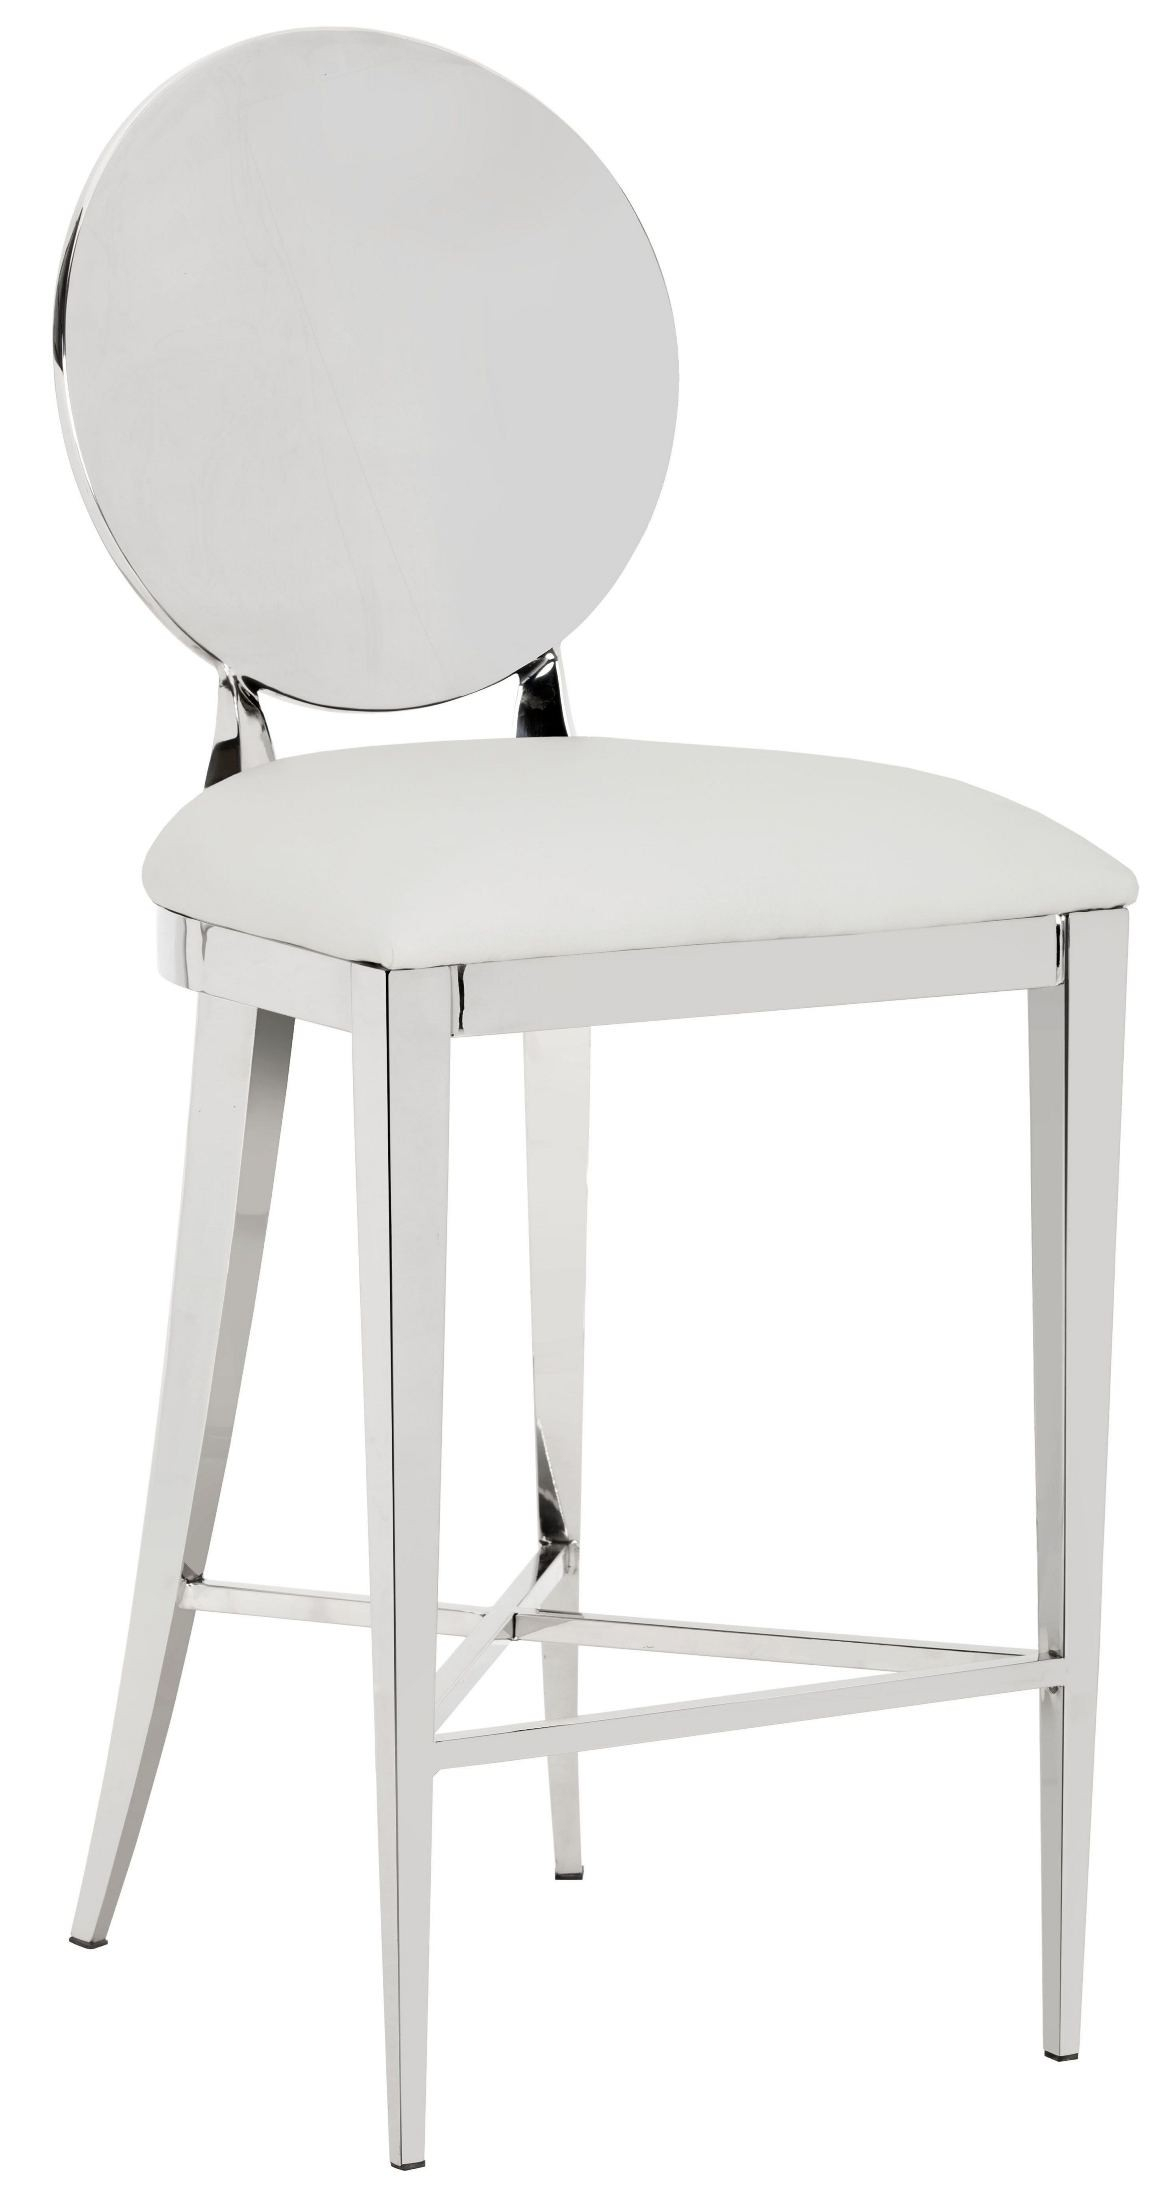 Marissa White Counter Stool From Sunpan | Coleman Furniture Regarding Marissa Sofa Chairs (View 25 of 25)